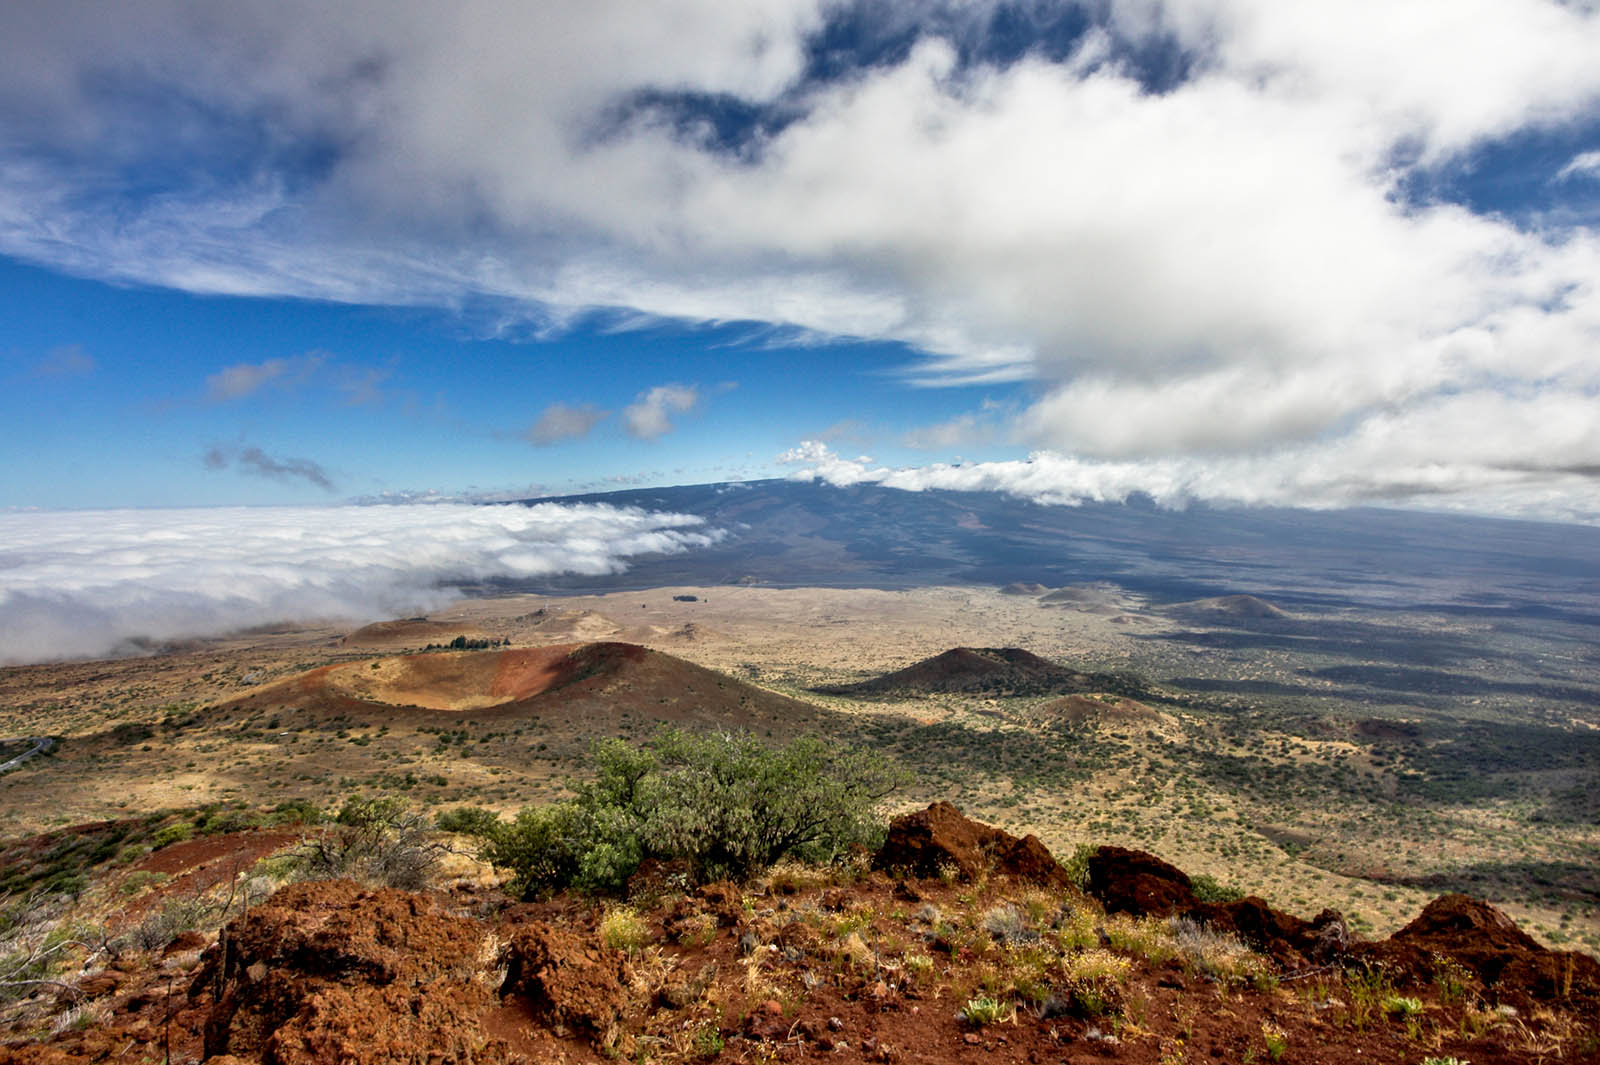 Mauna Loa from Mauna Kea by Joe Parks from Berkeley, CA is licensed under CC BY 2.0